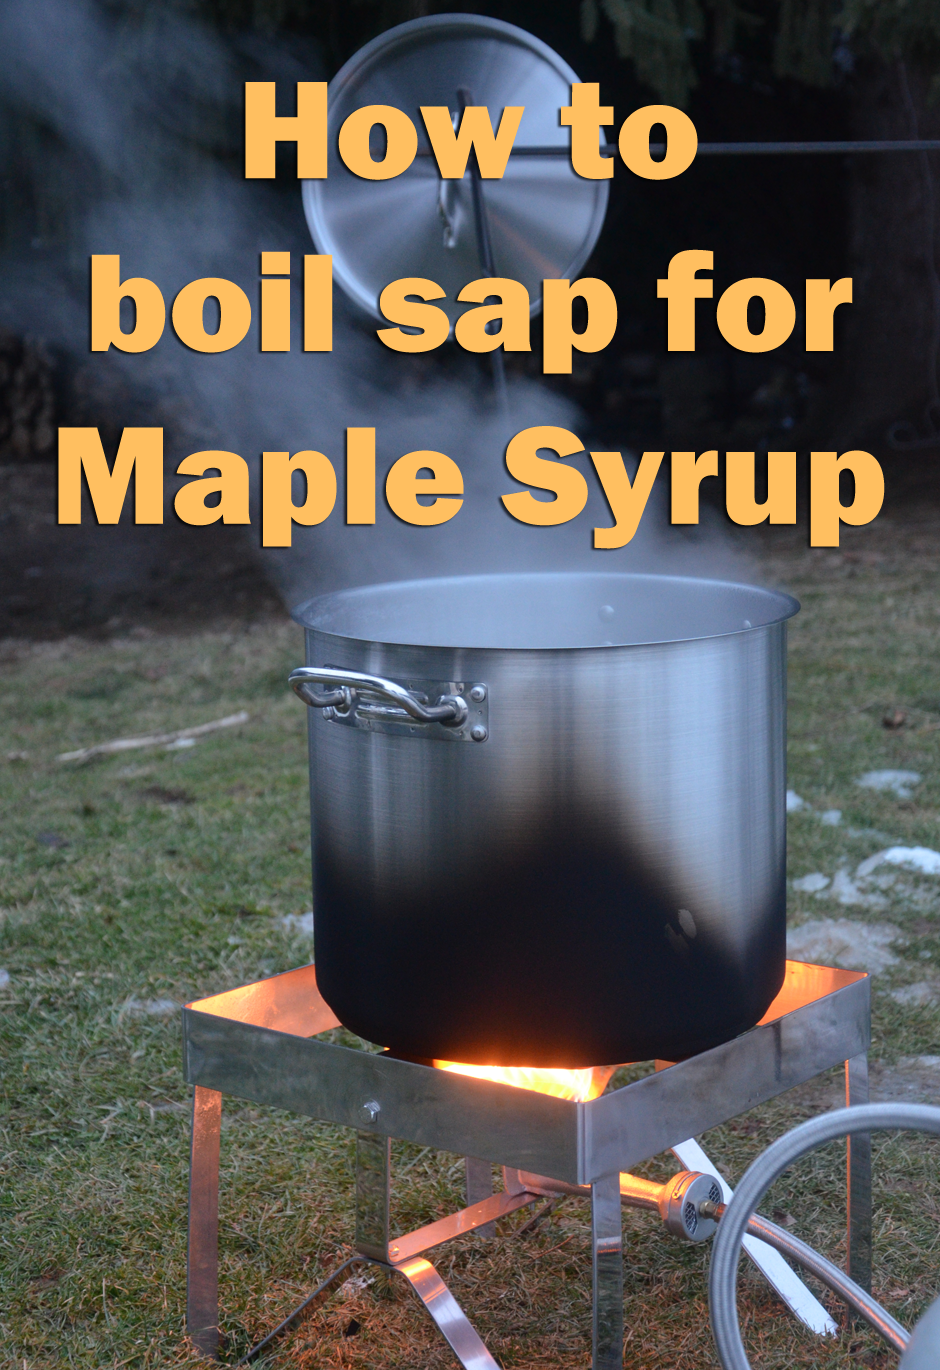 How to boil sap for Maple Syrup